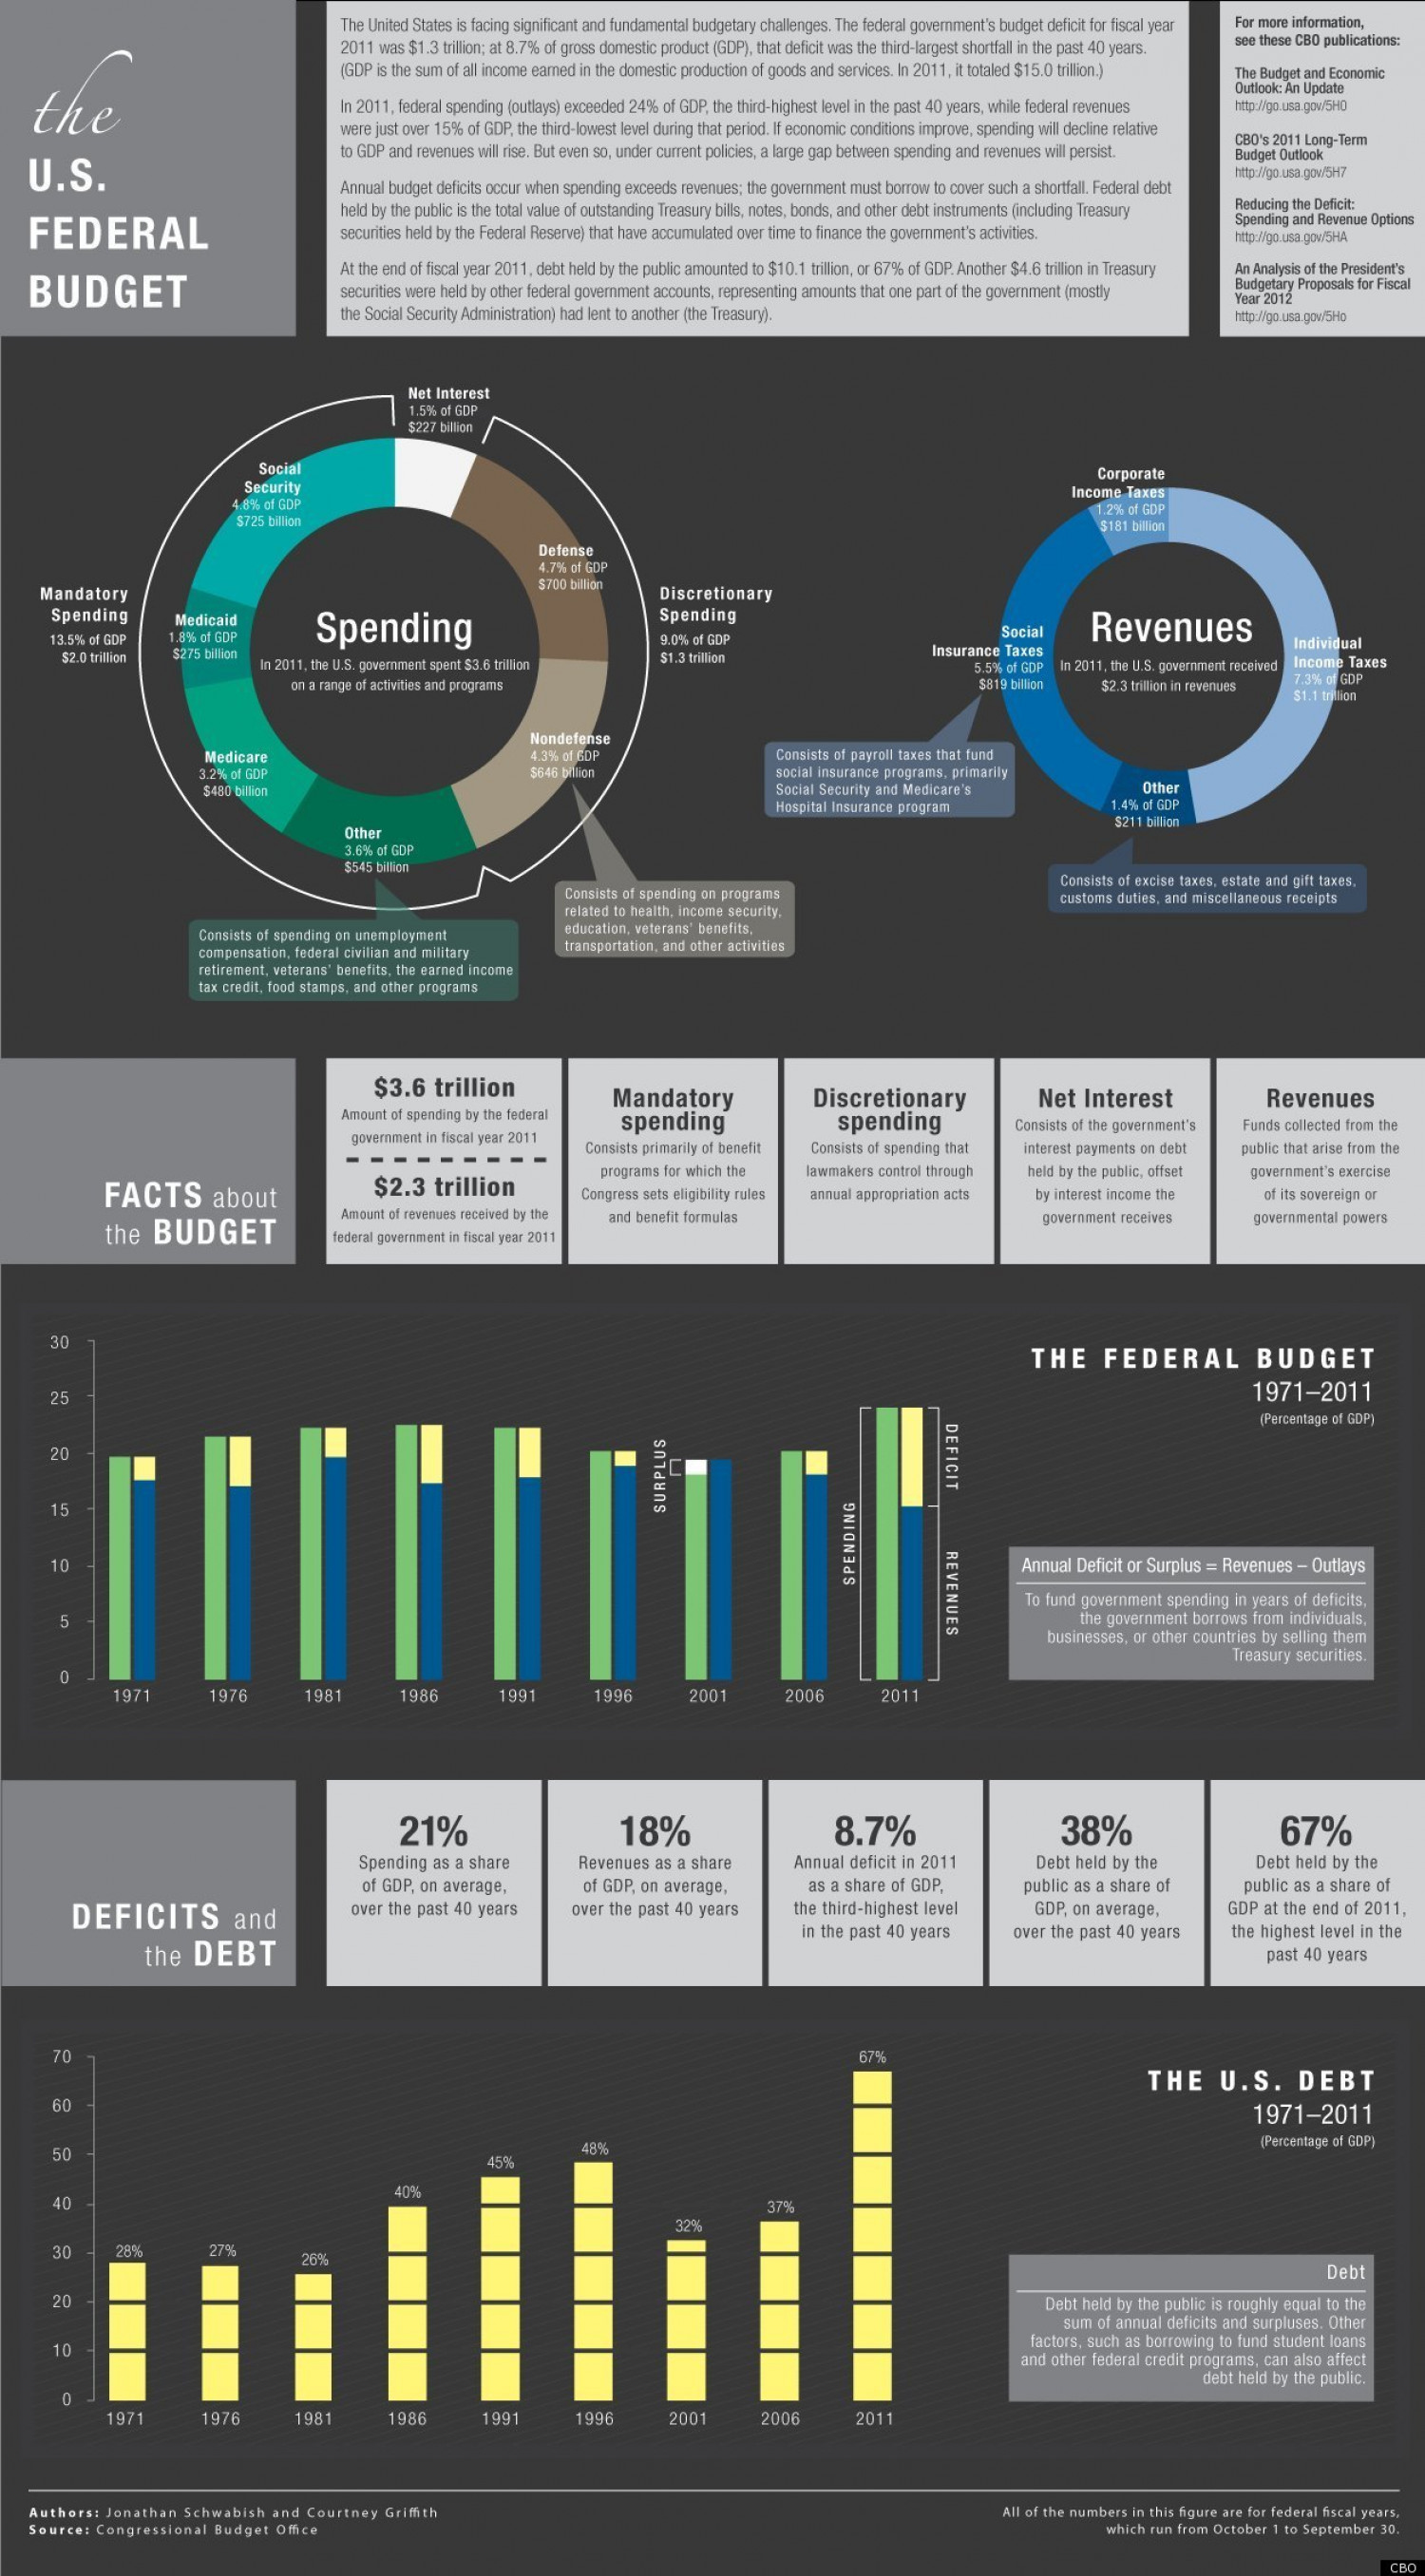 The U.S Federal Budget  Infographic